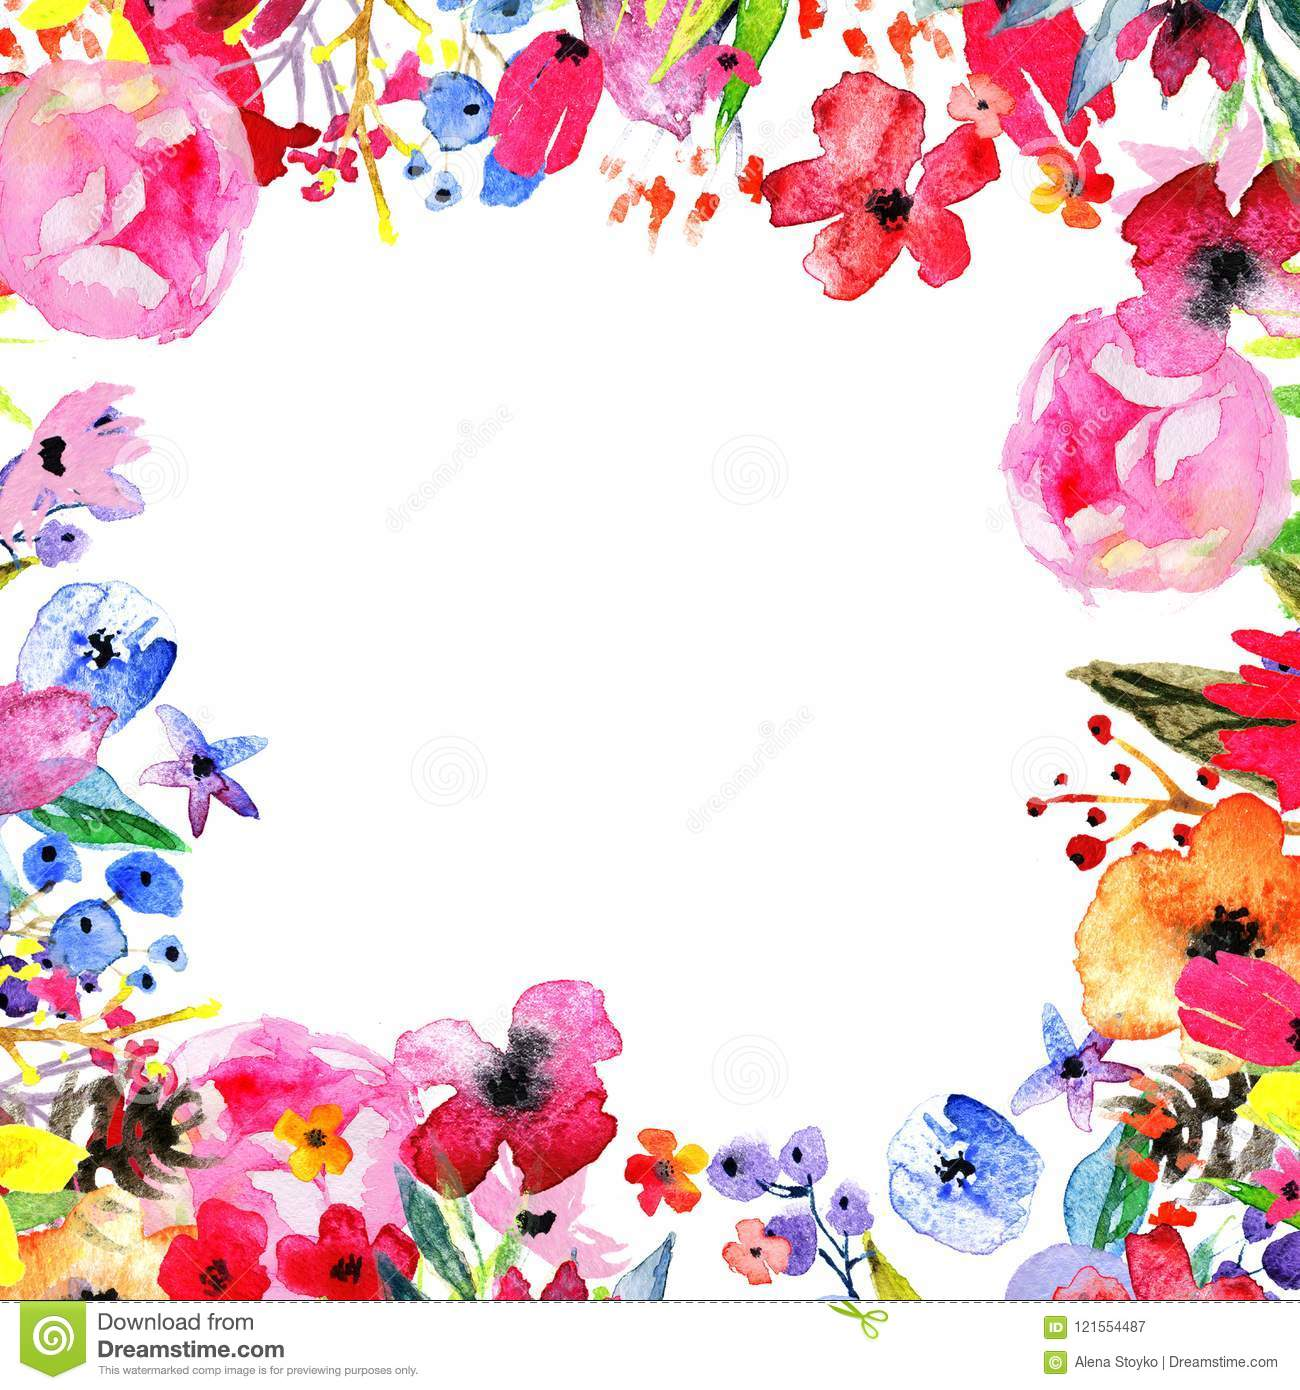 Watercolor Flower Border Stock Illustration. Illustration